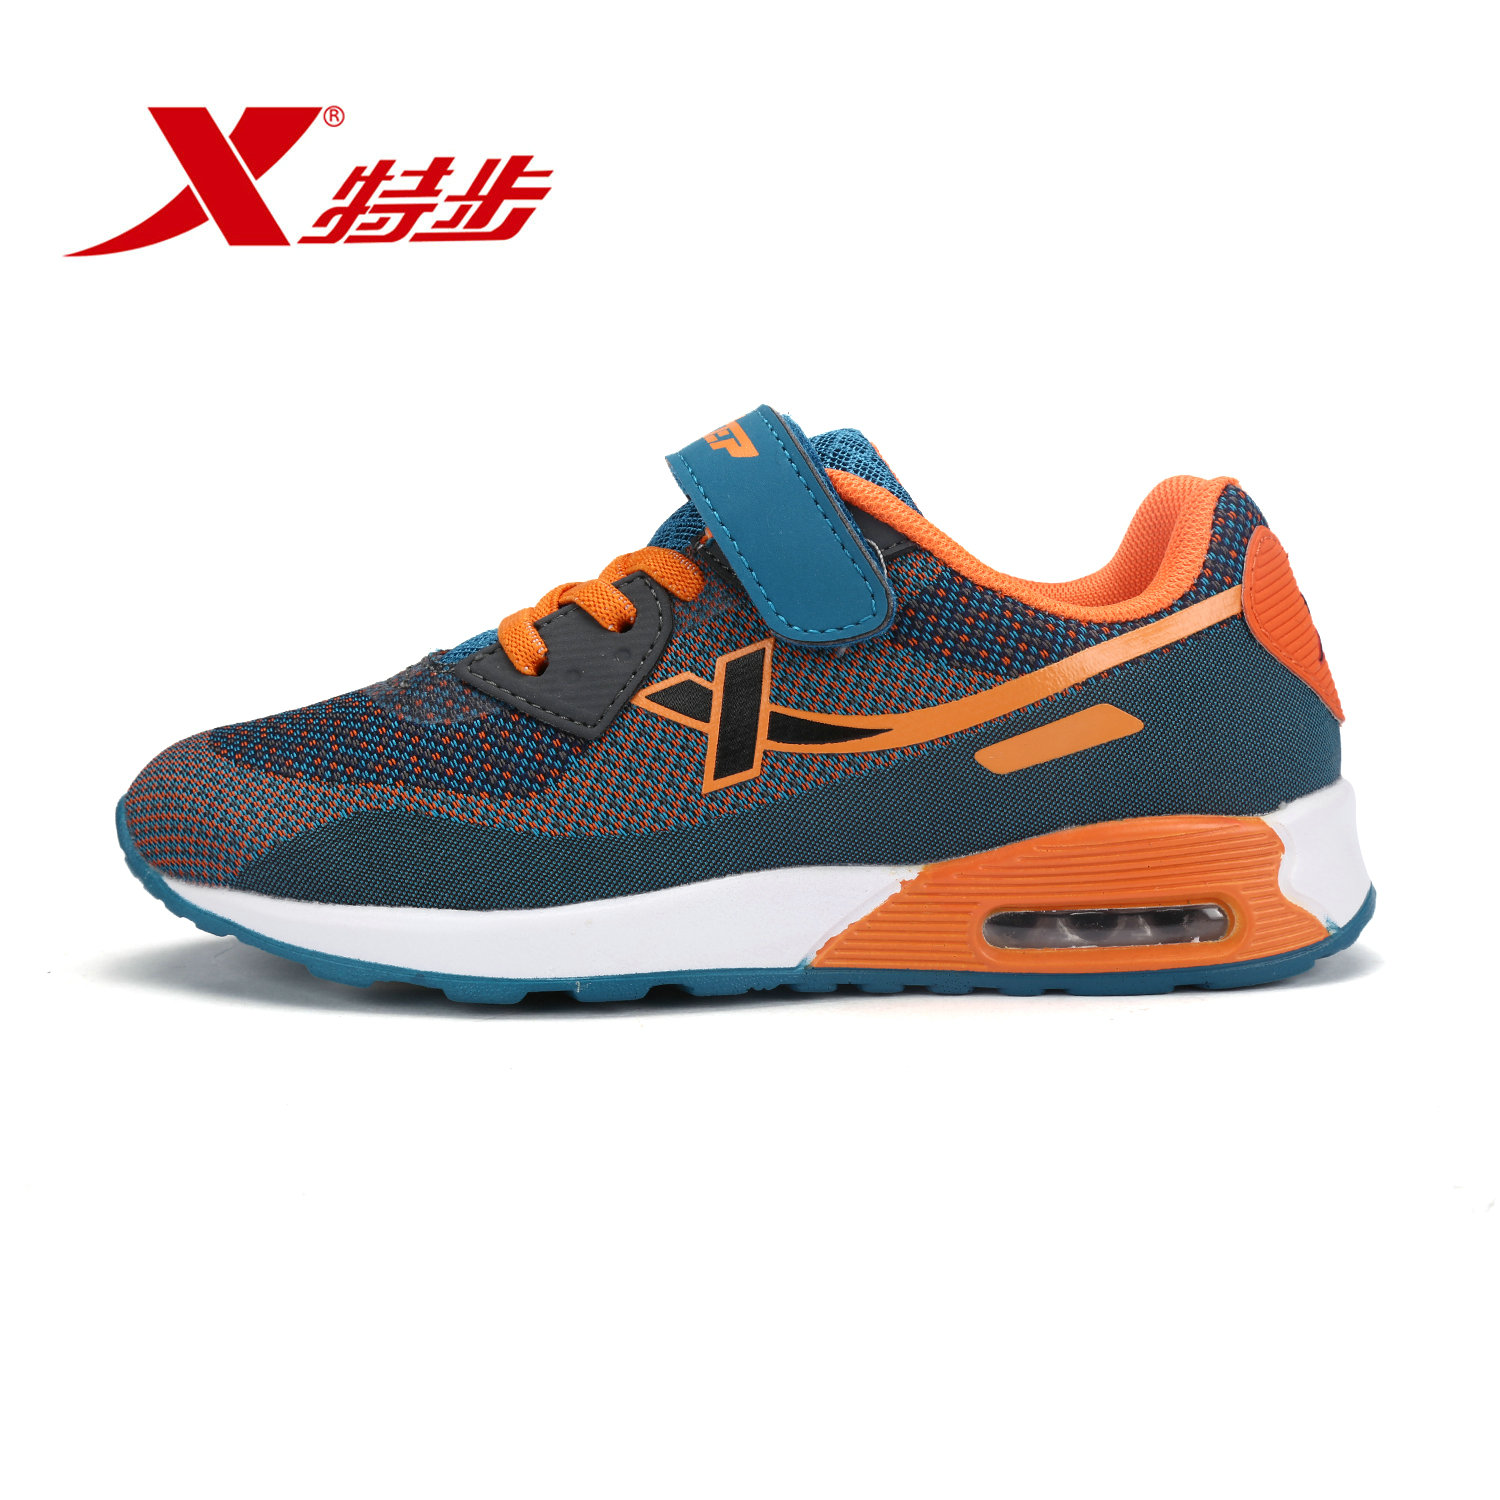 Xtep shoes 2016 new authentic shoes men's shoes big boy casual shoes cushion running shoes